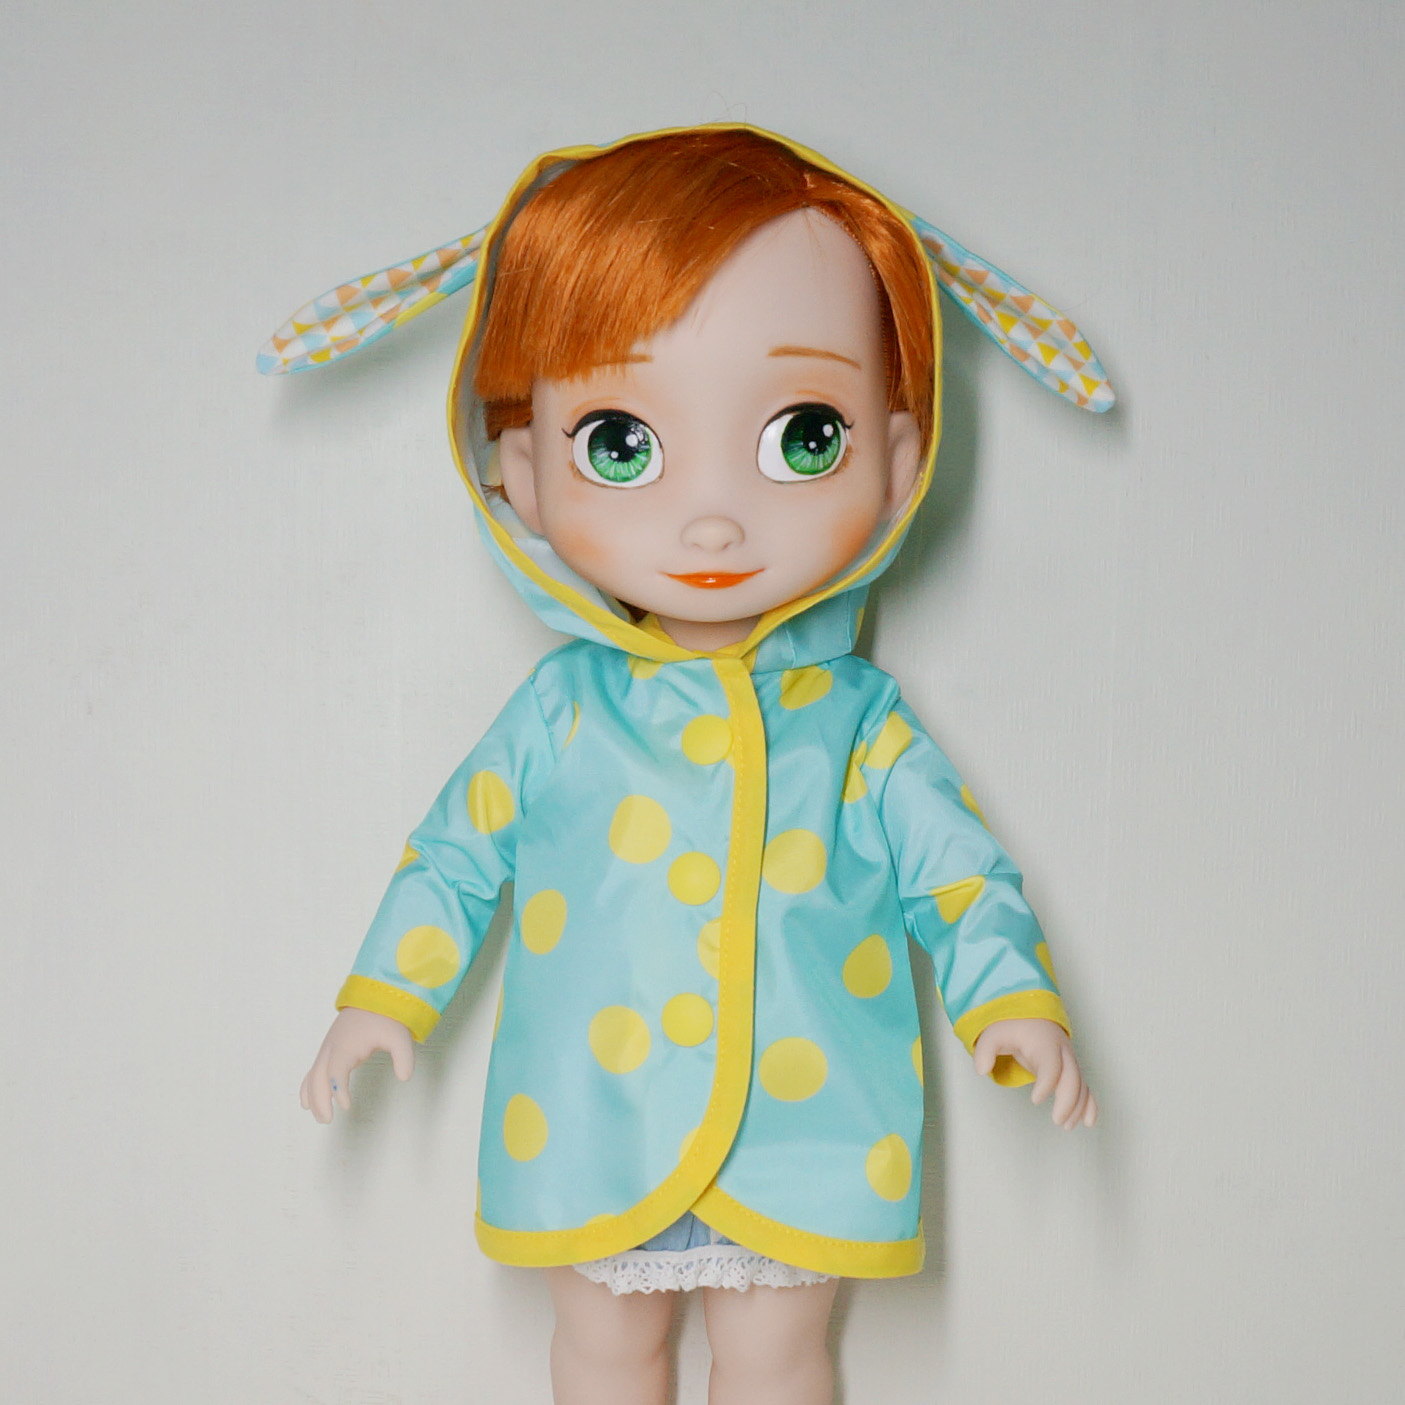 Disney Princess Doll Clothes: Disney Baby Doll Clothes Outer Raincoat Clothing Animator